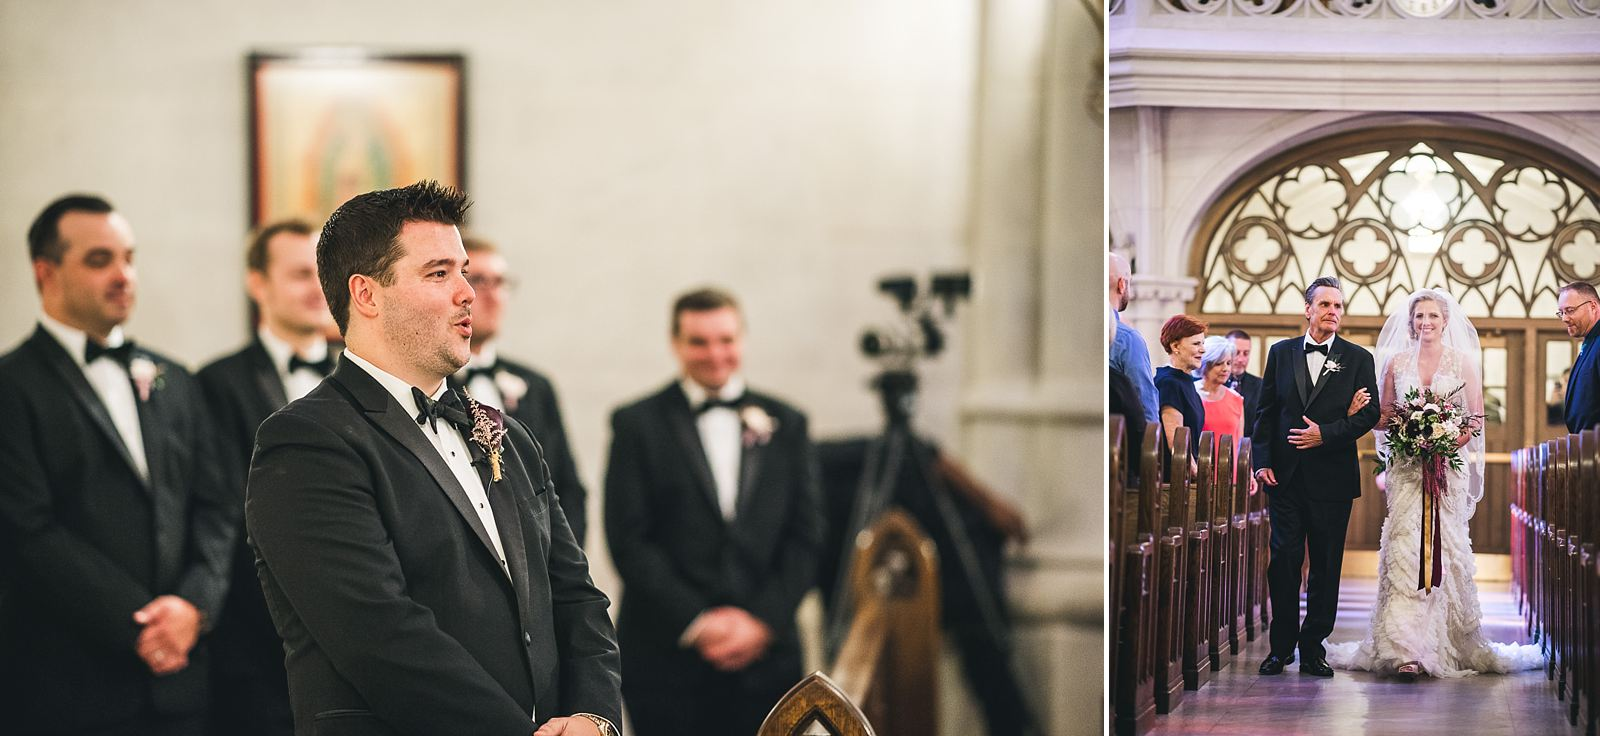 25 groom sees bride for the first time - Chicago Drake Hotel Wedding // Corie + Jordan